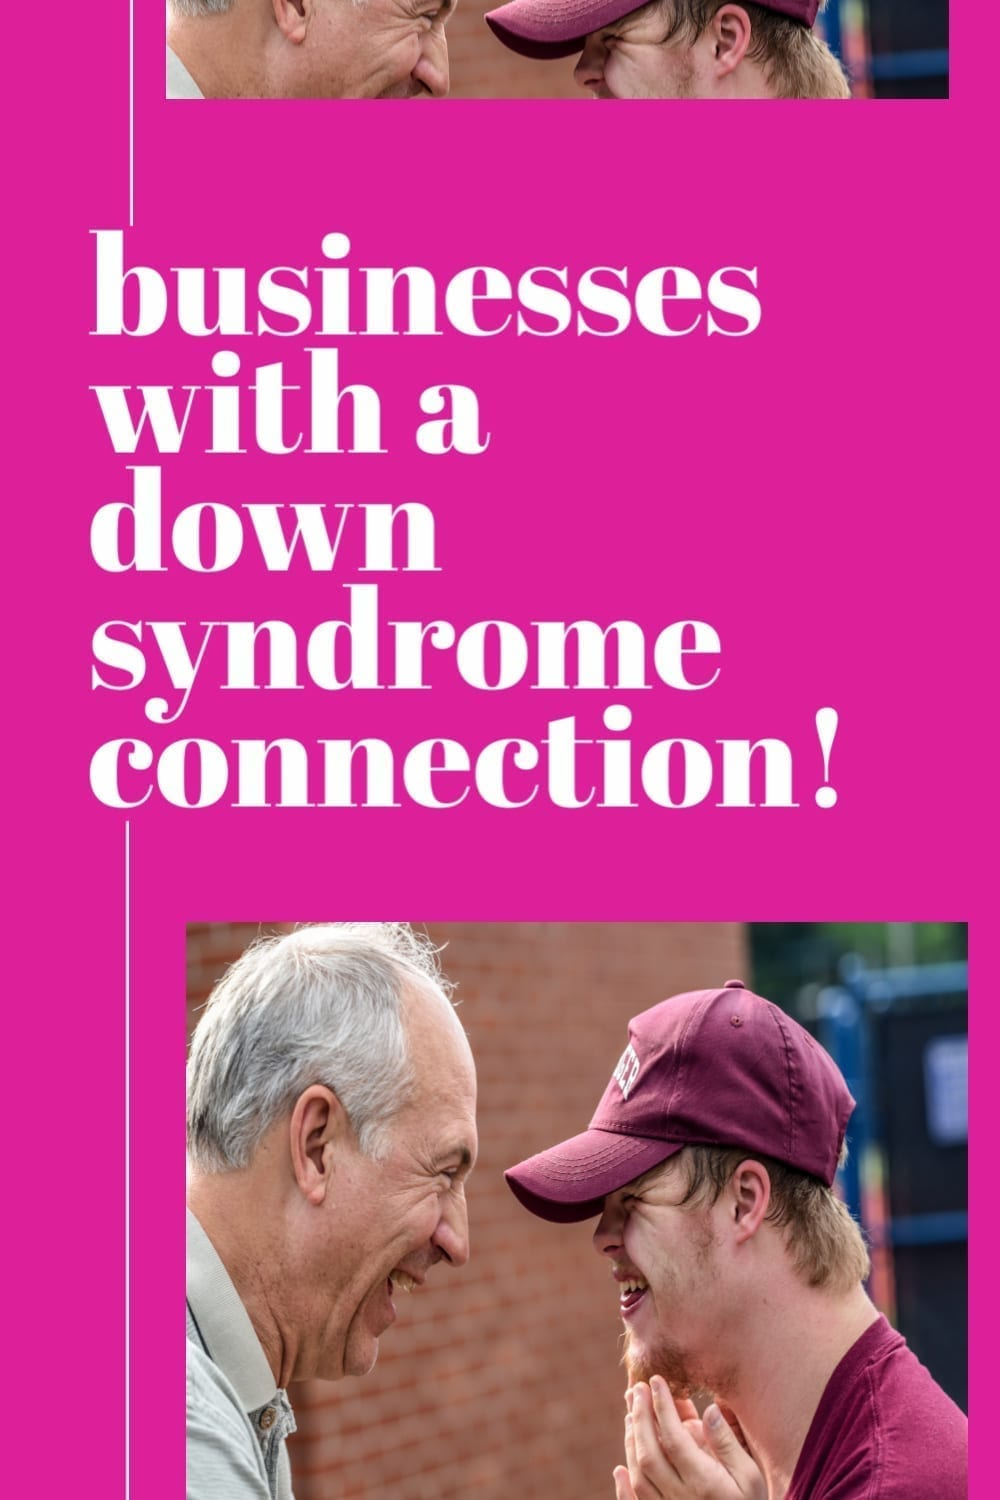 Image of an older man holding a young man with Down syndrome's hands; the man with Down syndrome is holding his hands clasped to his chin; both are smiling with love; t he man with Down syndrome is wearing a red cap and shirt, a brick wall is in the background